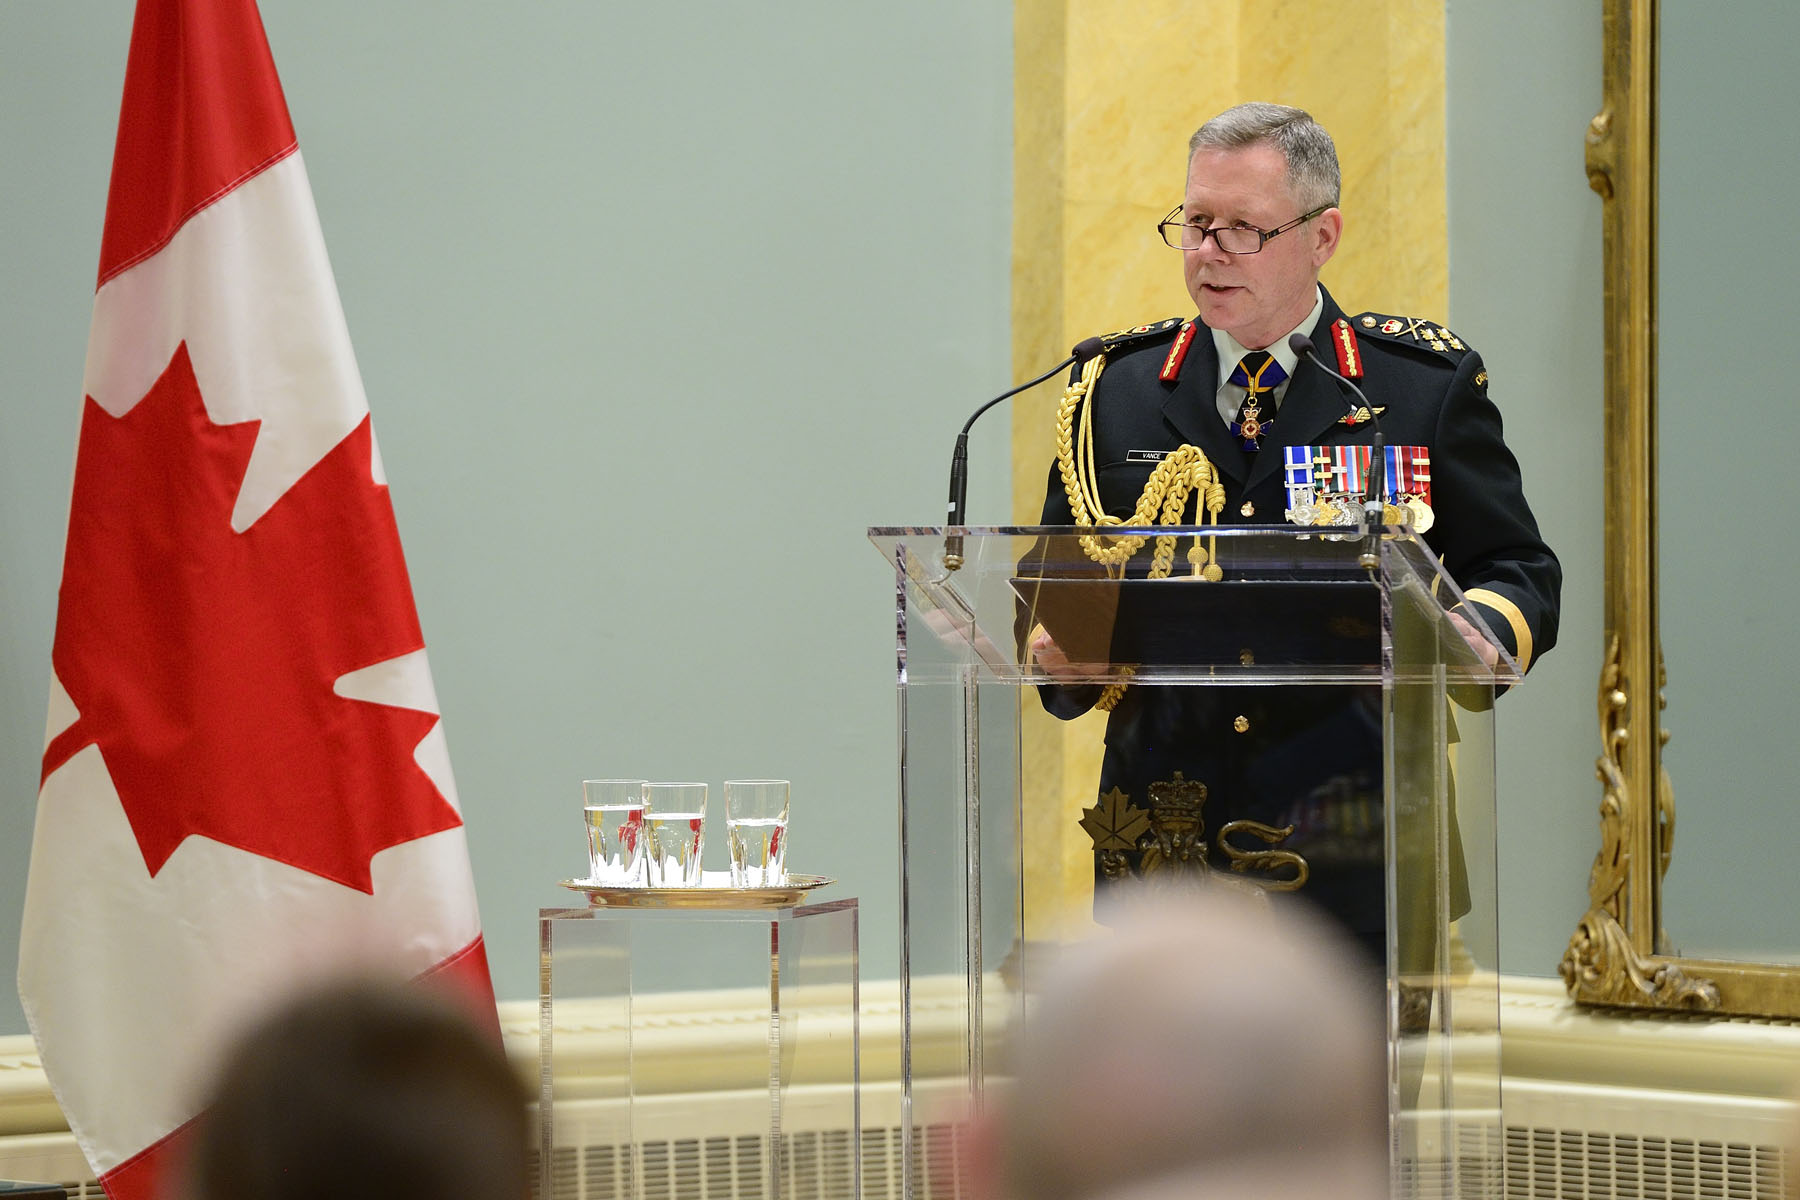 Military personnel were also thanked for their service by the Chief of the Defence Staff, General Jonathan Vance.